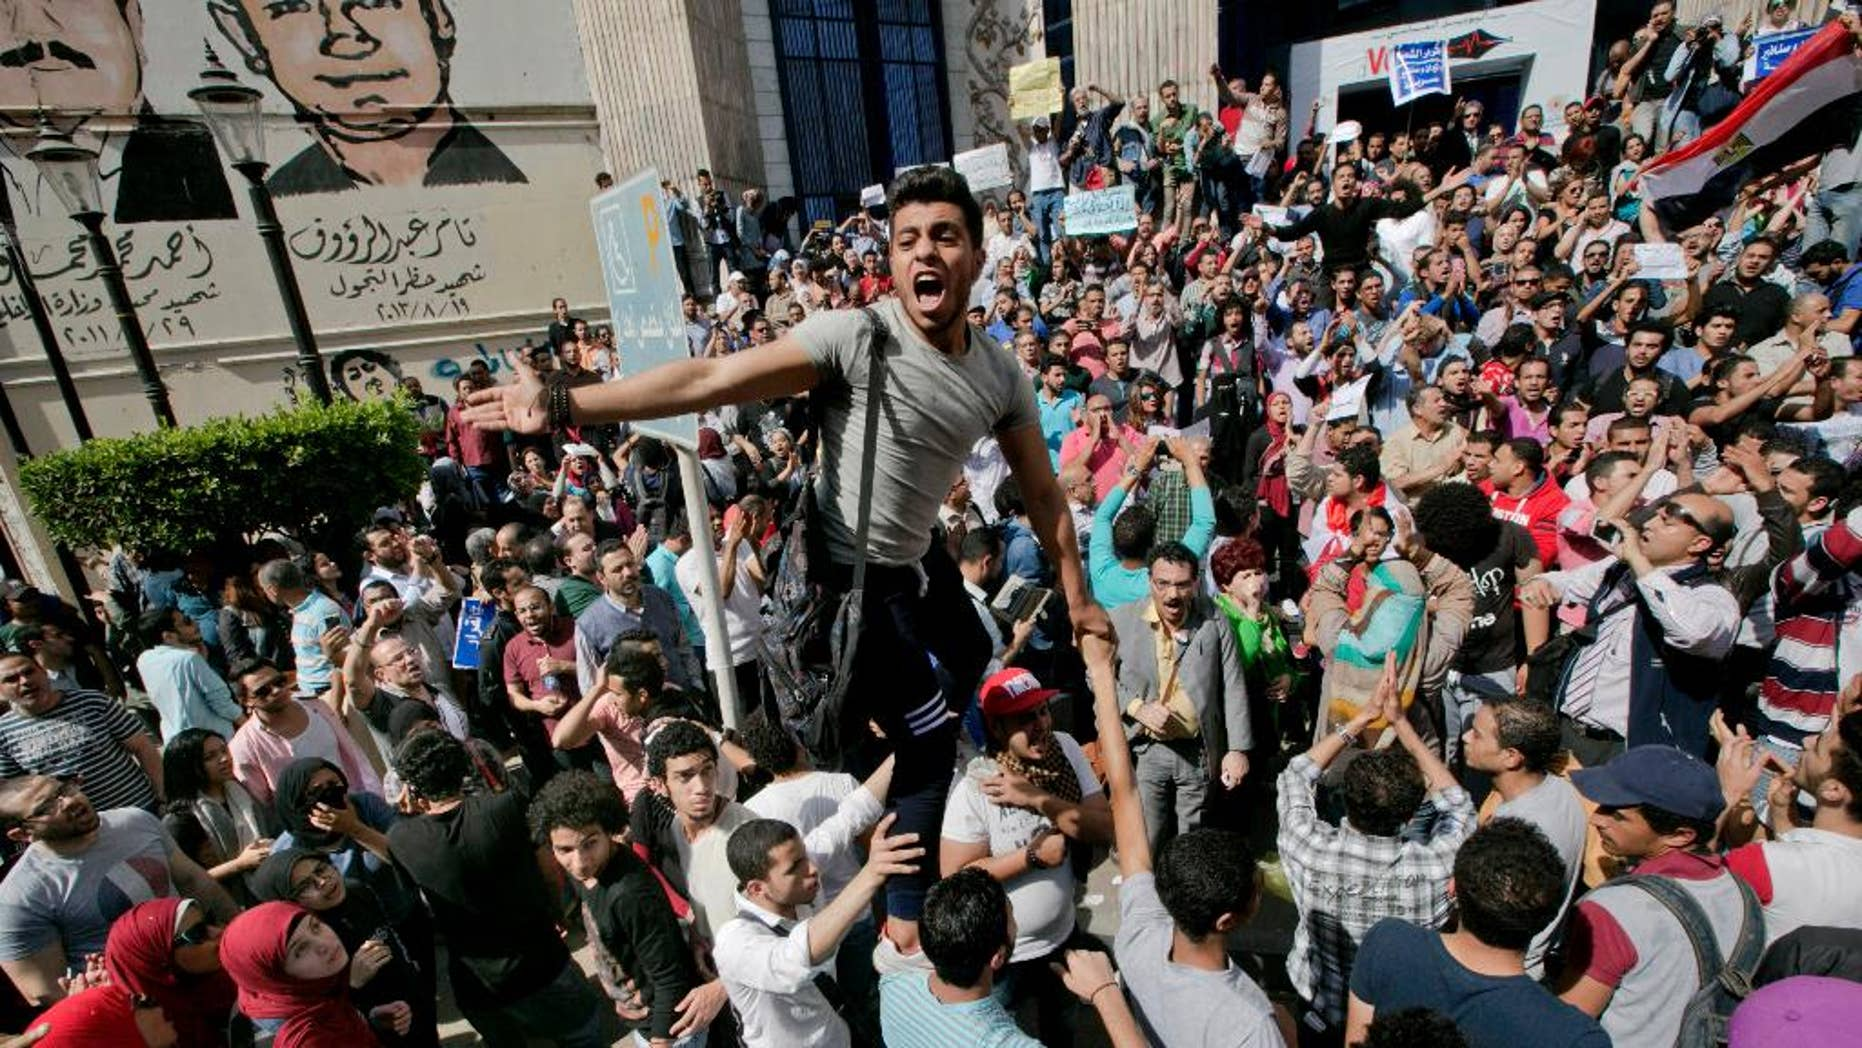 FILE - In this Friday, April 15, 2016 file photo, Egyptians shout slogans against Egyptian President Abdel-Fattah el-Sissi during a protest against the decision to hand over control of two strategic Red Sea islands to Saudi Arabia in front of the Press Syndicate, in Cairo, Egypt. Egyptian security forces have rounded up dozens of activists, journalists, and lawyers ahead of demonstrations called for April 25 against President Abdel-Fattah el-Sissi's policies, including the transfer of two Red Sea islands to Saudi Arabia, lawyers and witnesses said Friday, April 22. 2016. (AP Photo/Amr Nabil, File)